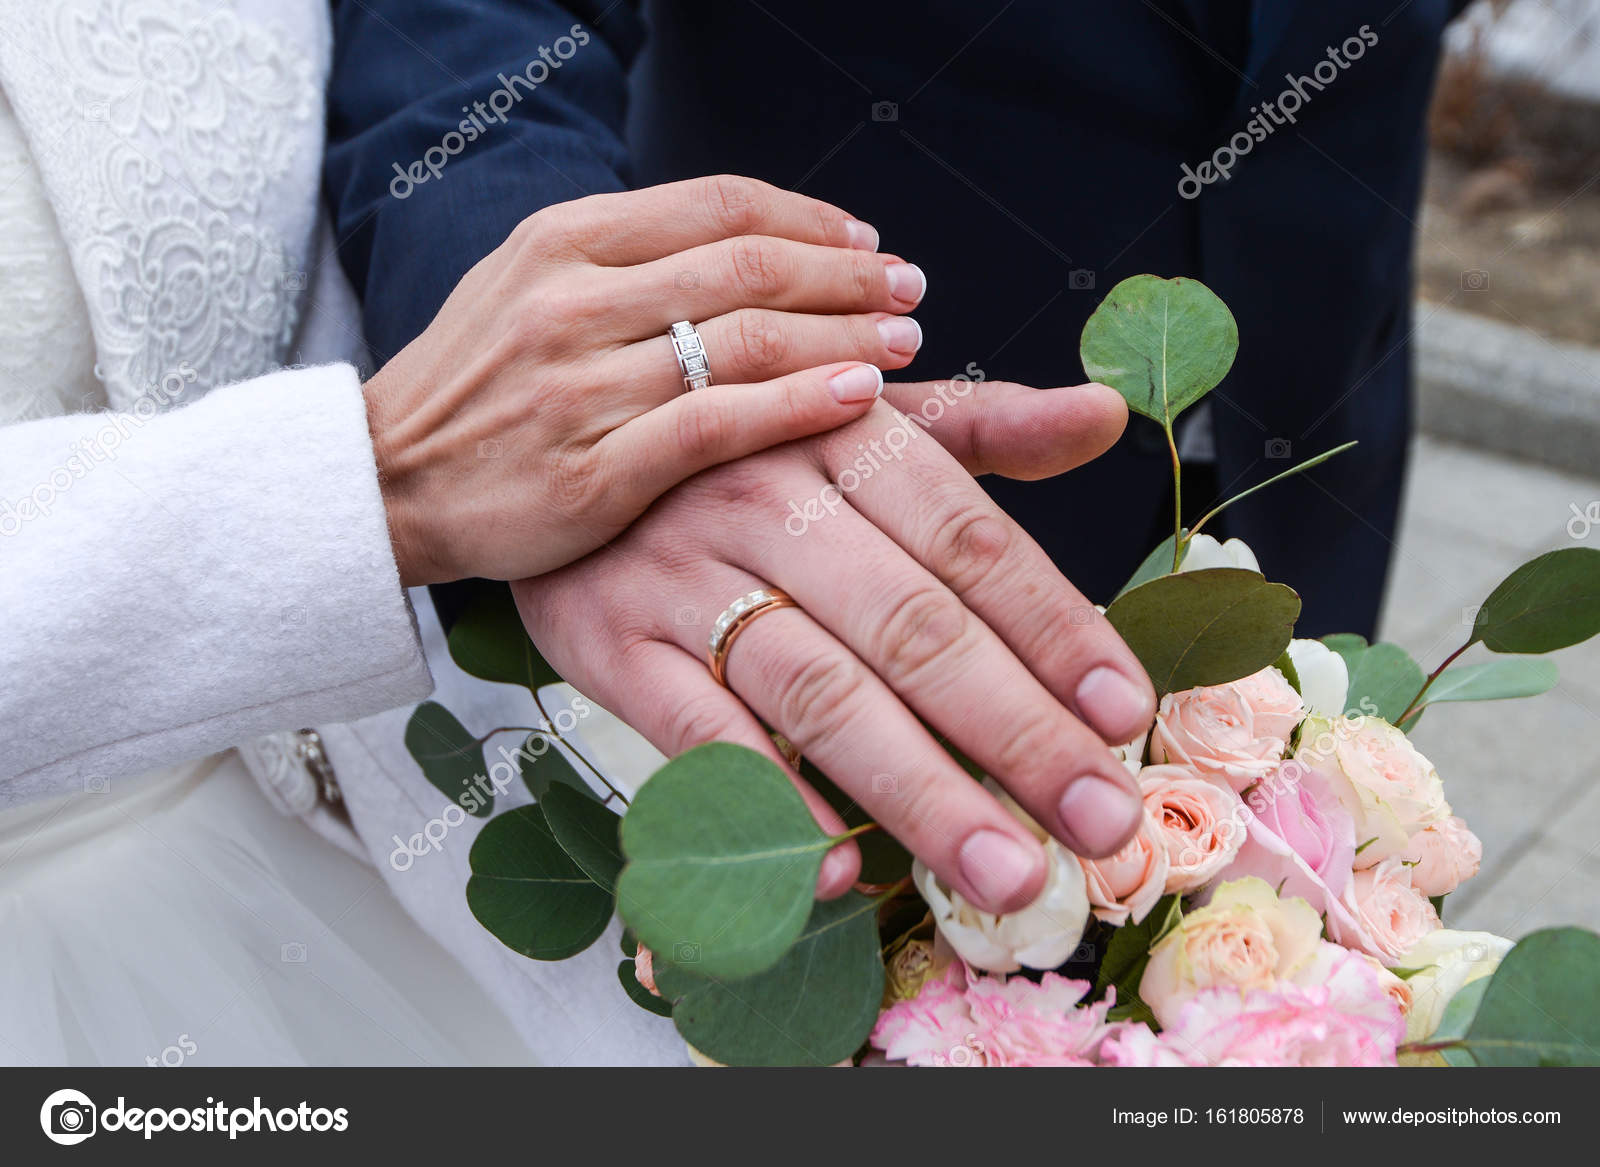 He Put the Wedding Ring on Her — Stock Photo © Alex.S. #161805878